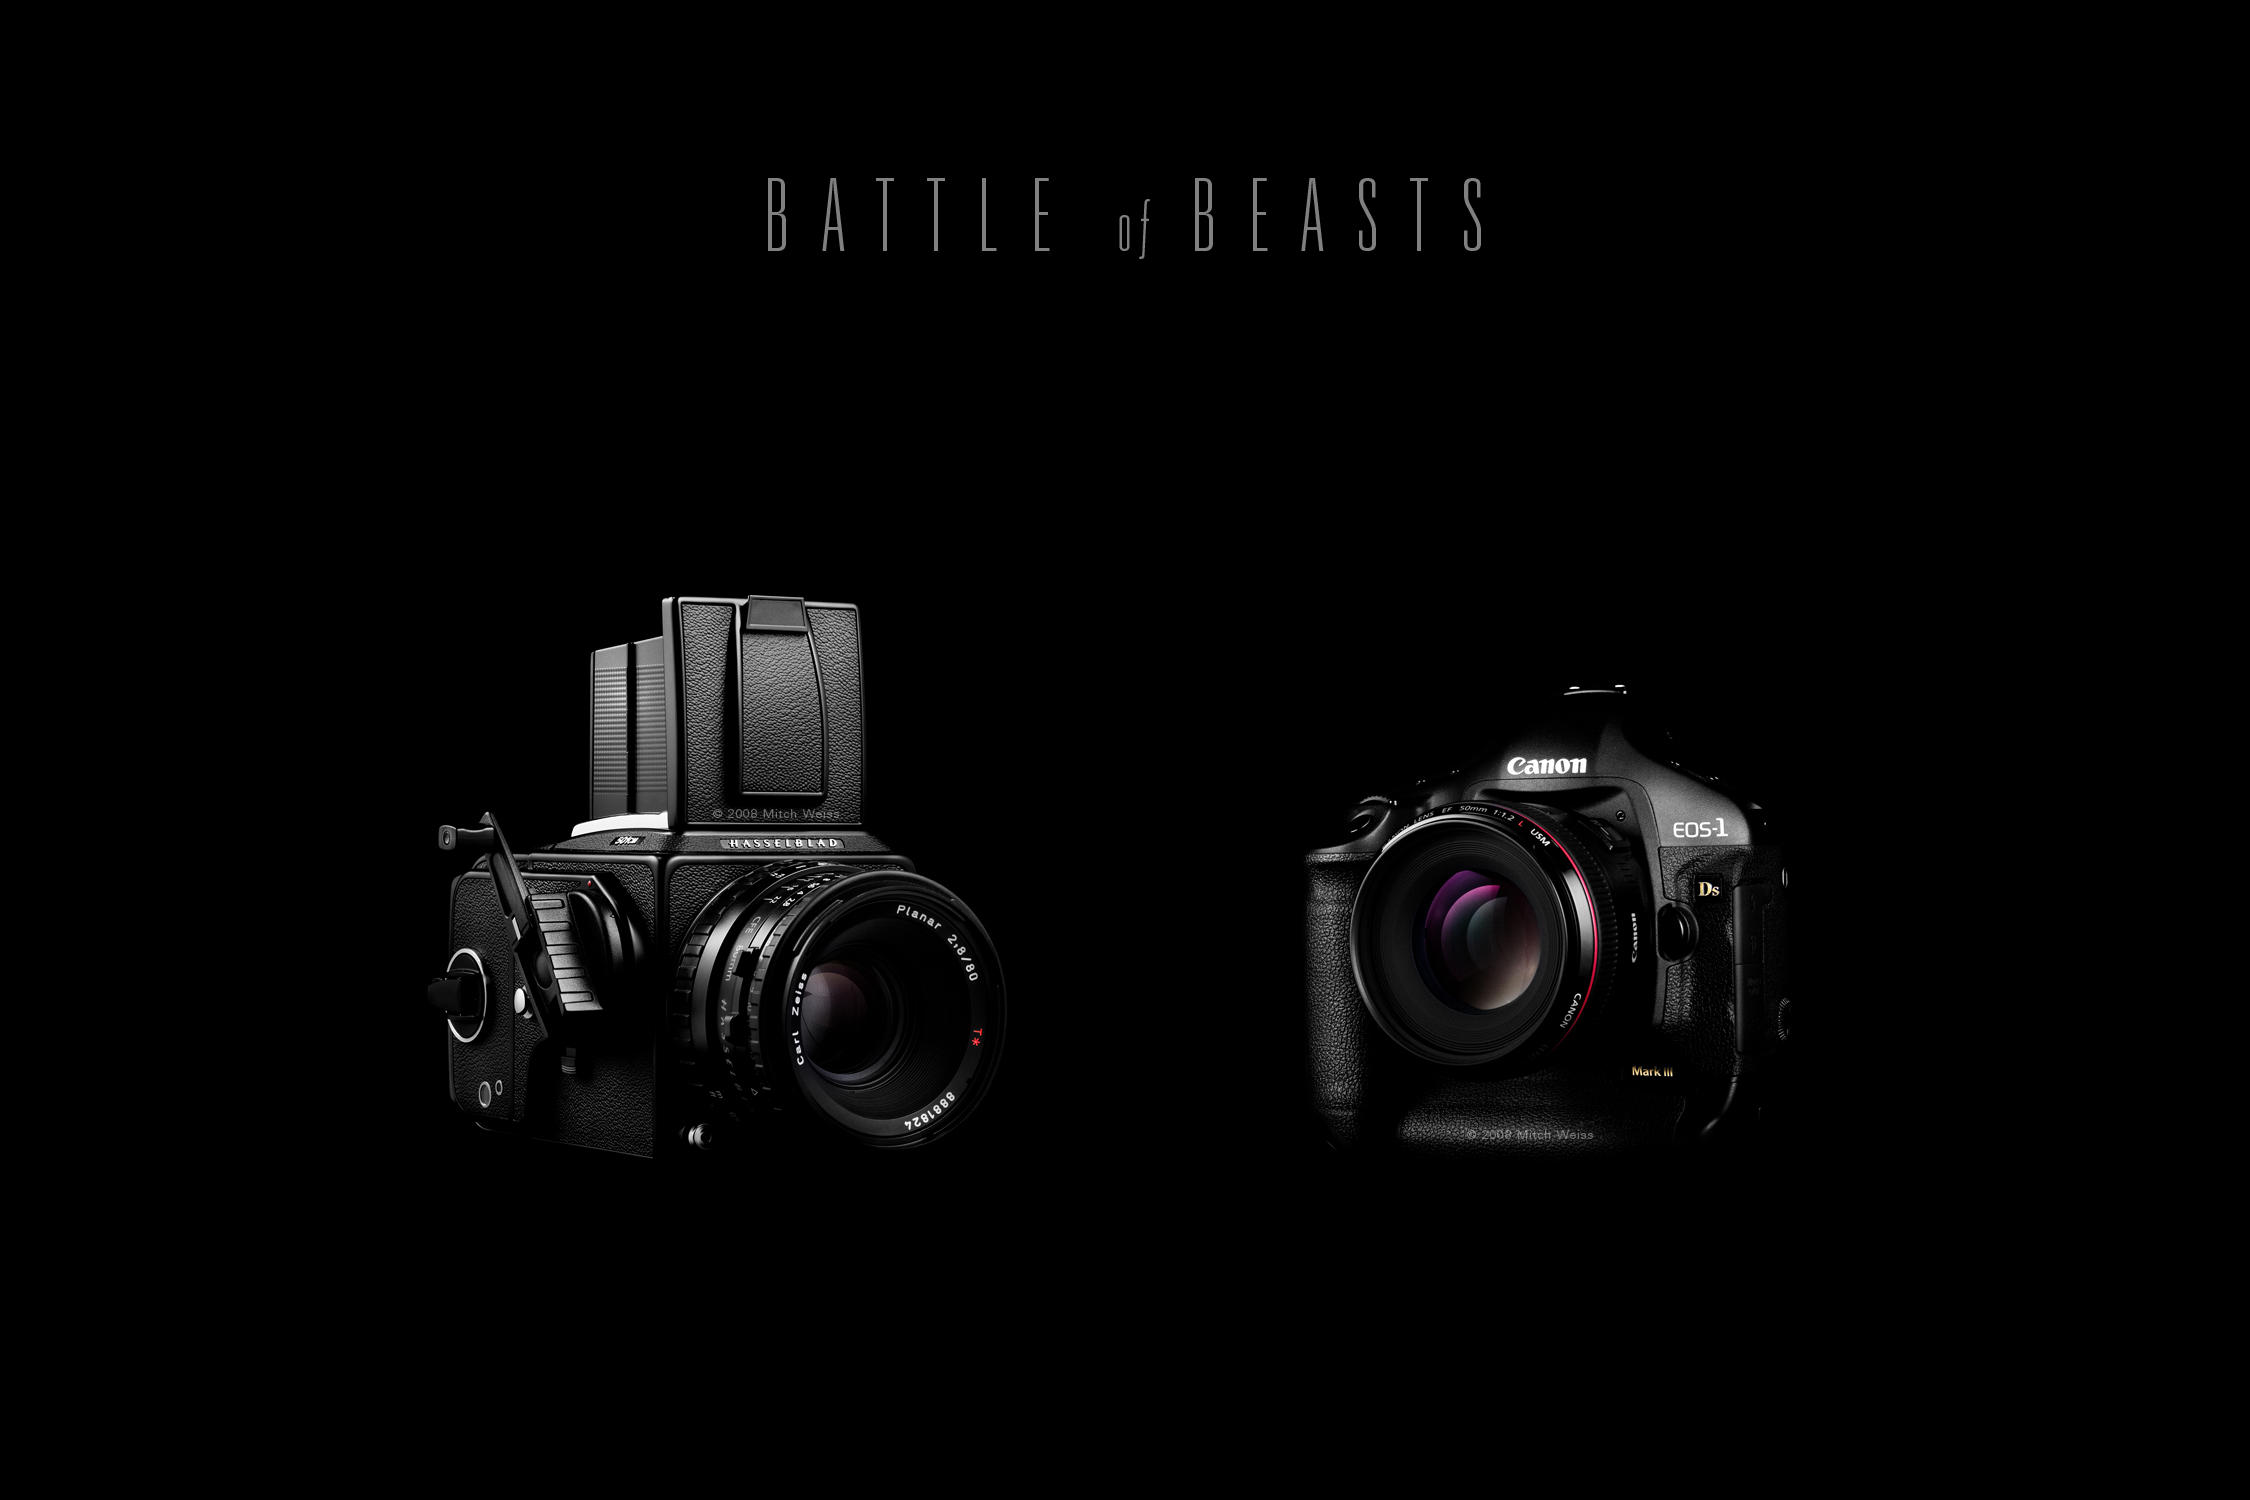 BATTLE of BEASTS by Omega300m